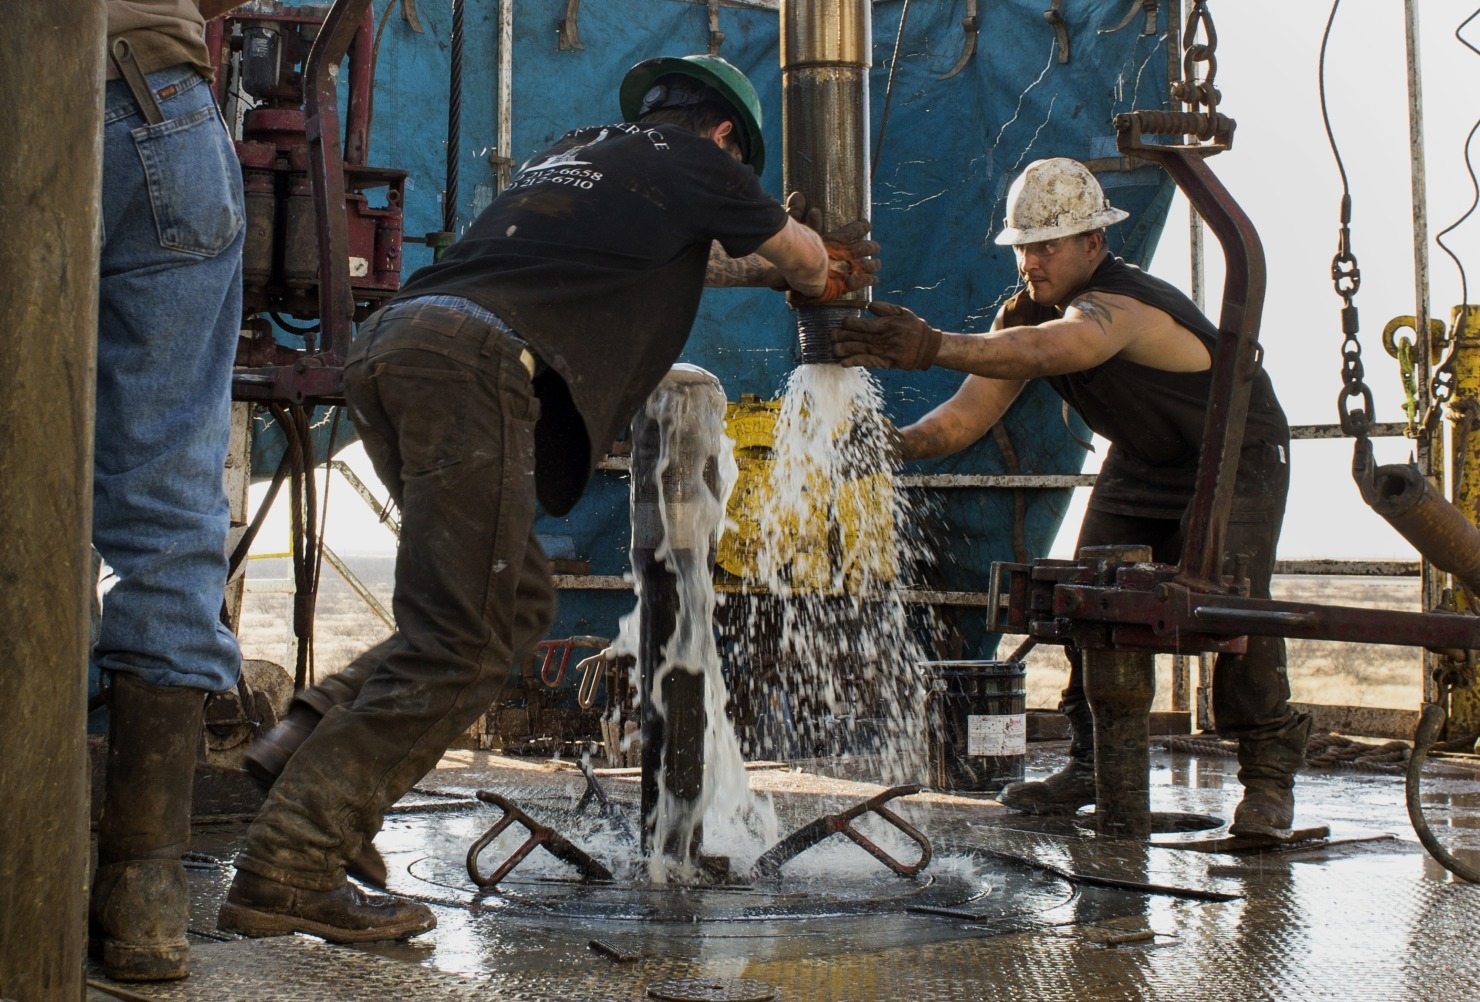 Workers connect drill bits and drill collars, used to extract natural petroleum, on Endeavor Energy Resources LP's Big Dog Drilling Rig 22 in the Permian basin outside of Midland, Texas, U.S., on Friday, Dec. 12, 2014.  Photographer: Brittany Sowacke/Bloomberg